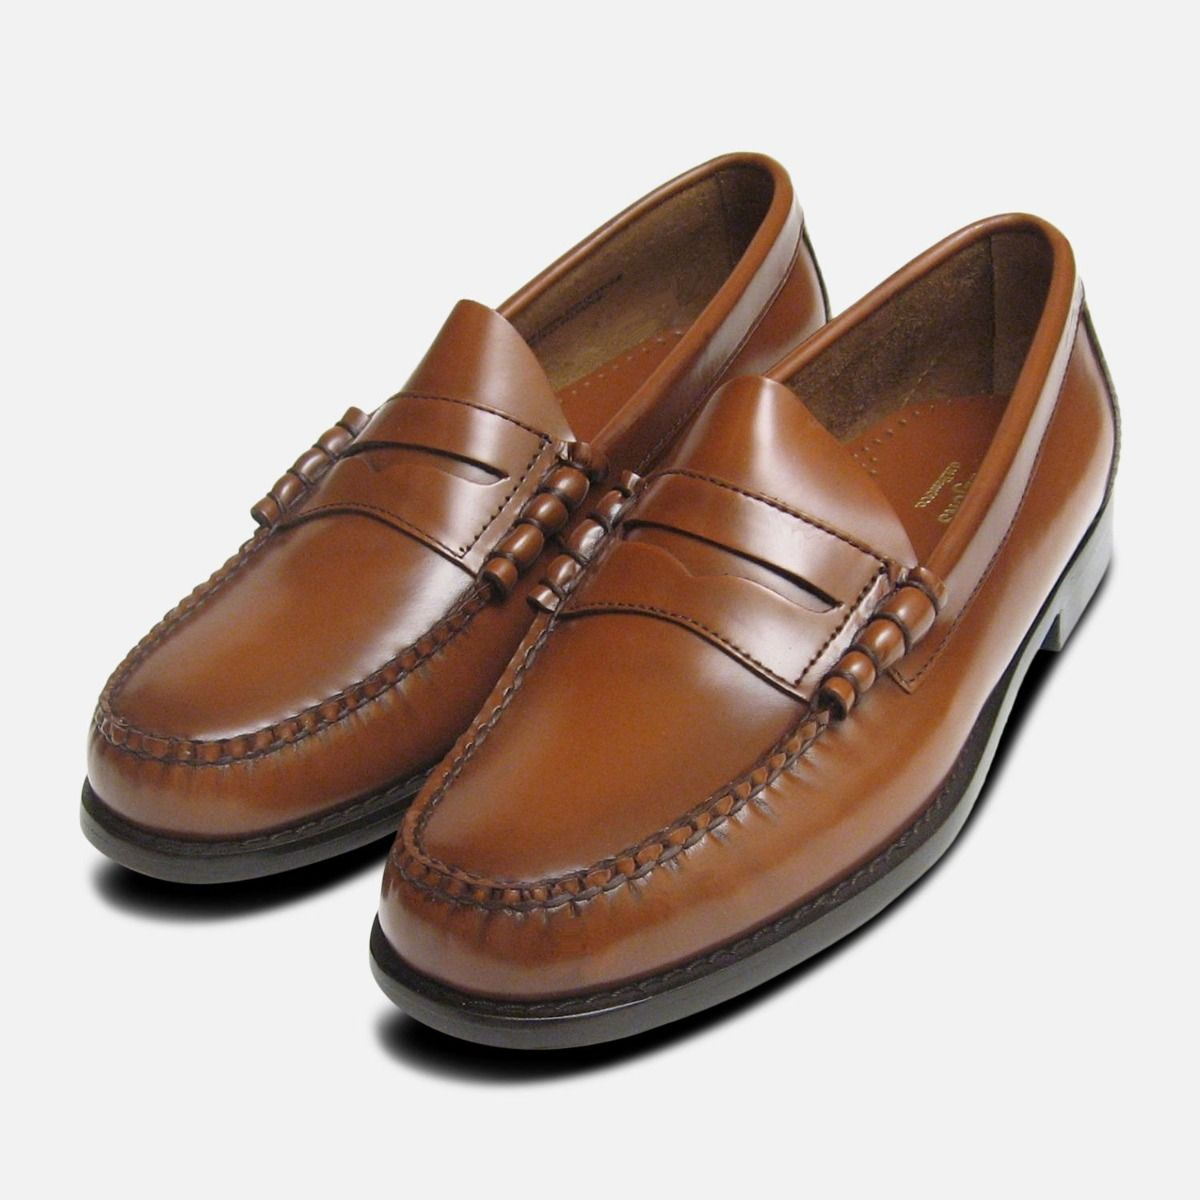 7ba19379722 Classic Mens Honey Brown Larson Penny Loafers GH Bass Weejuns